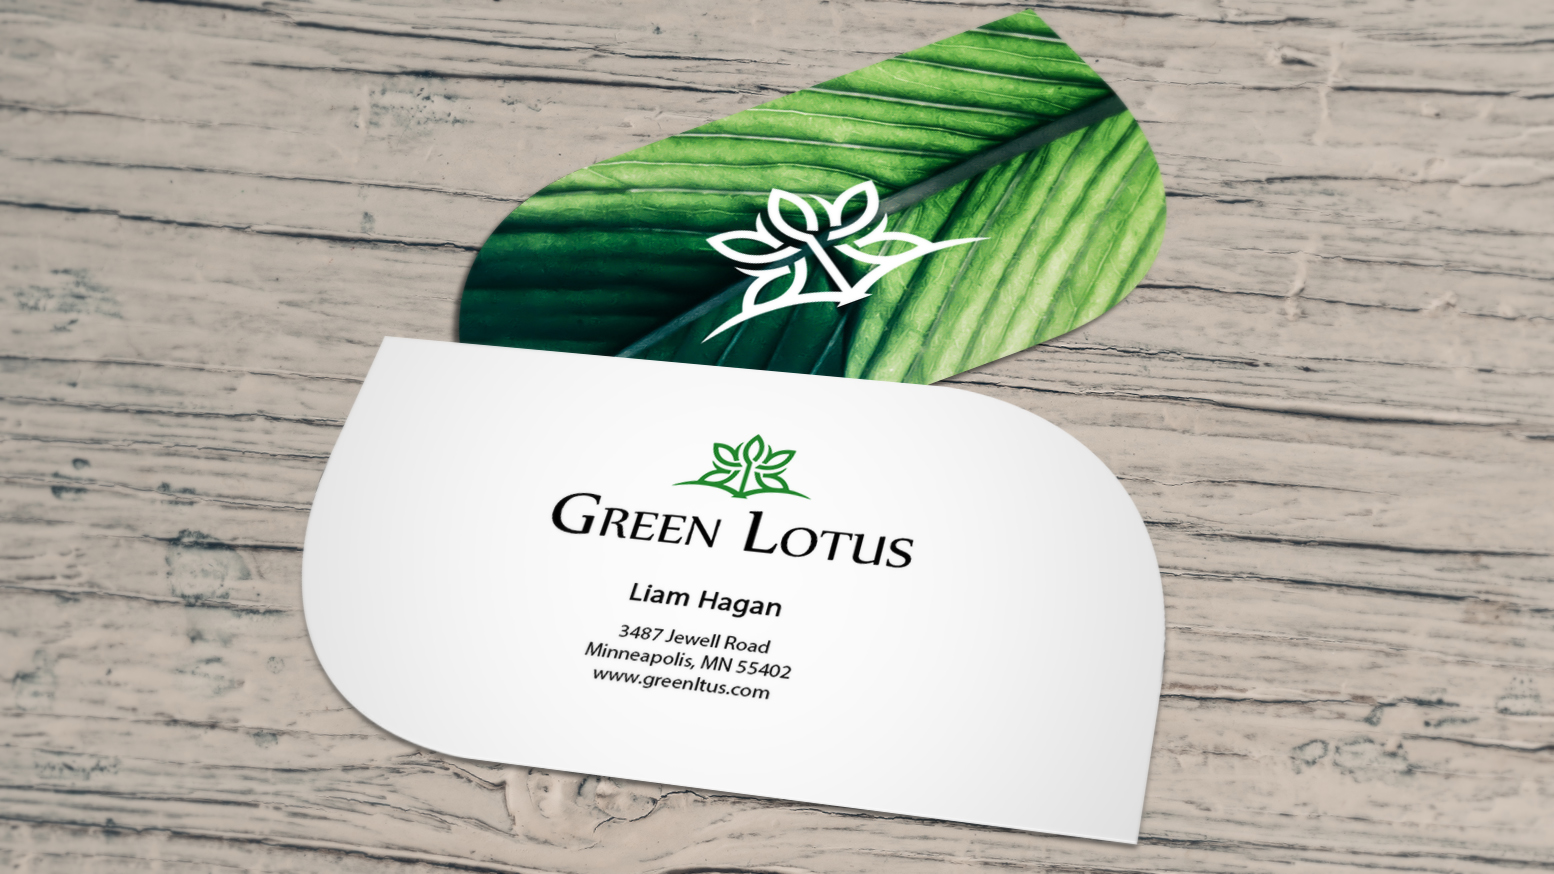 Leaf business card for an environmental organization